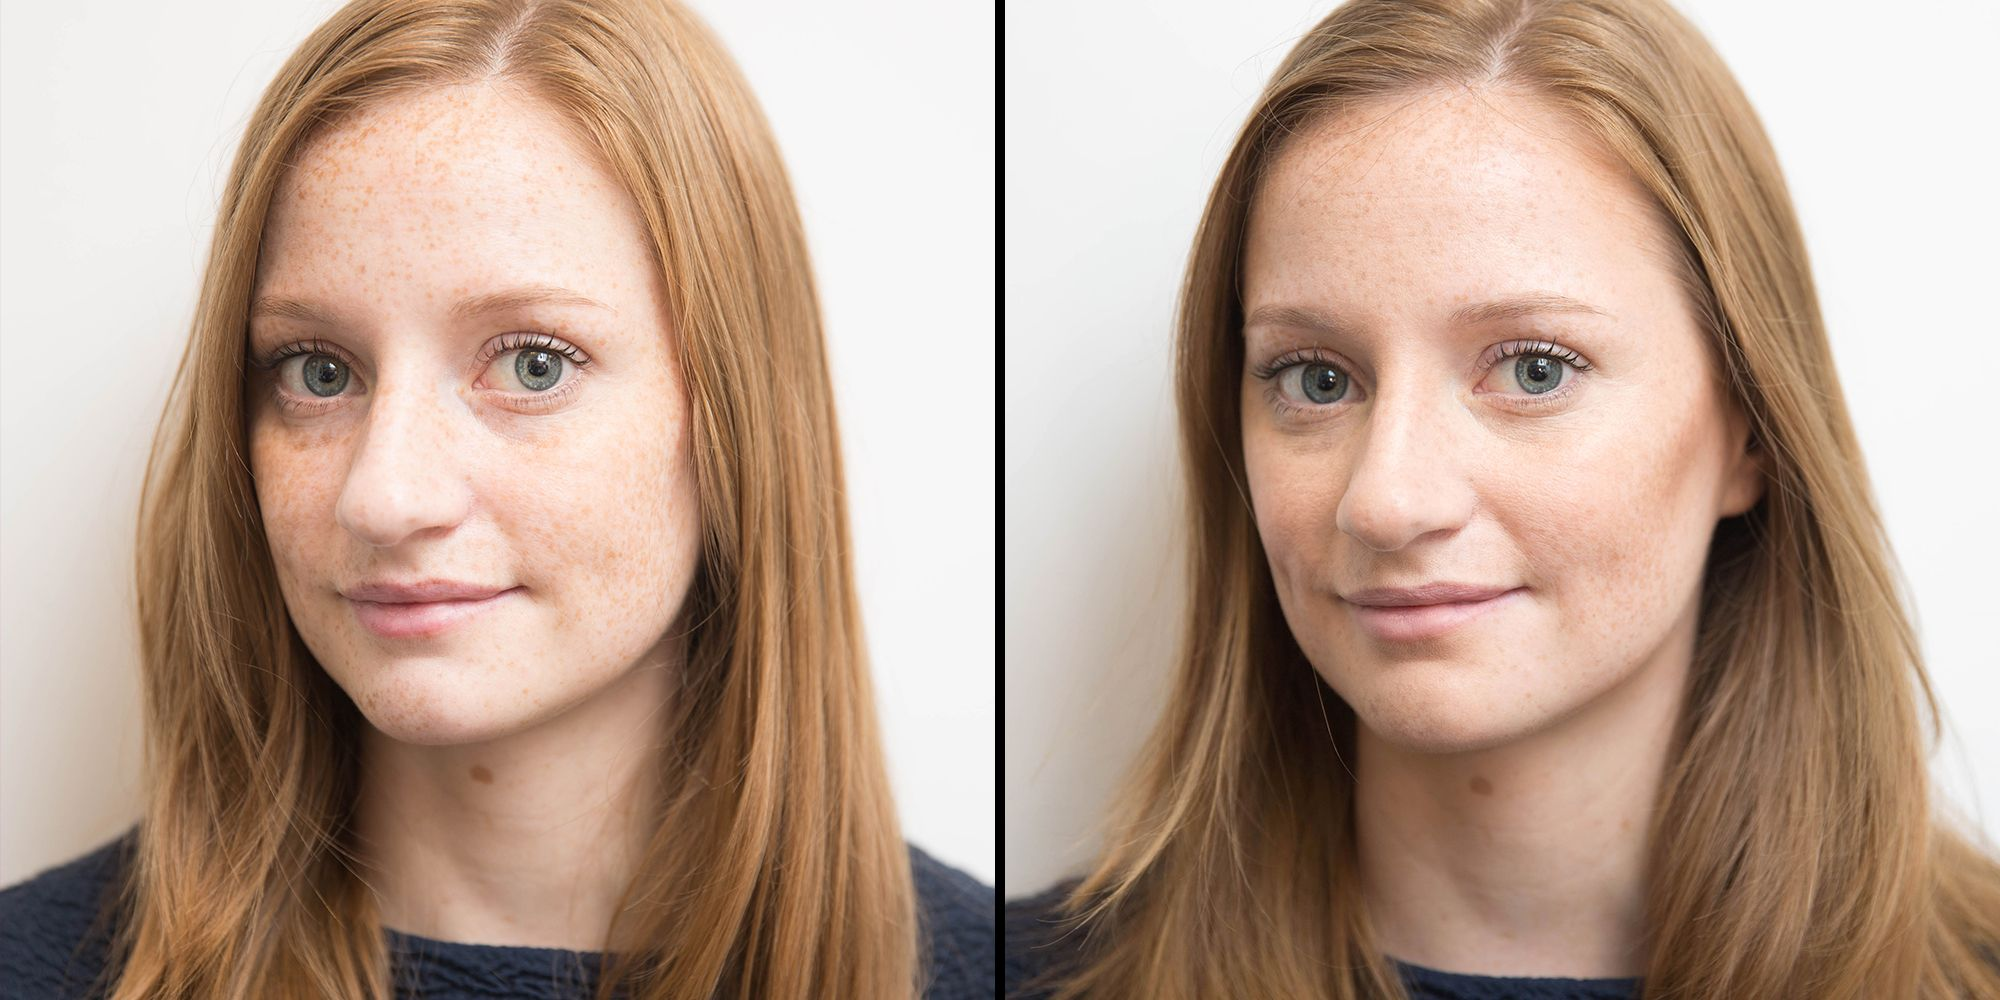 Here S What 7 People Look Like With And Without Contouring